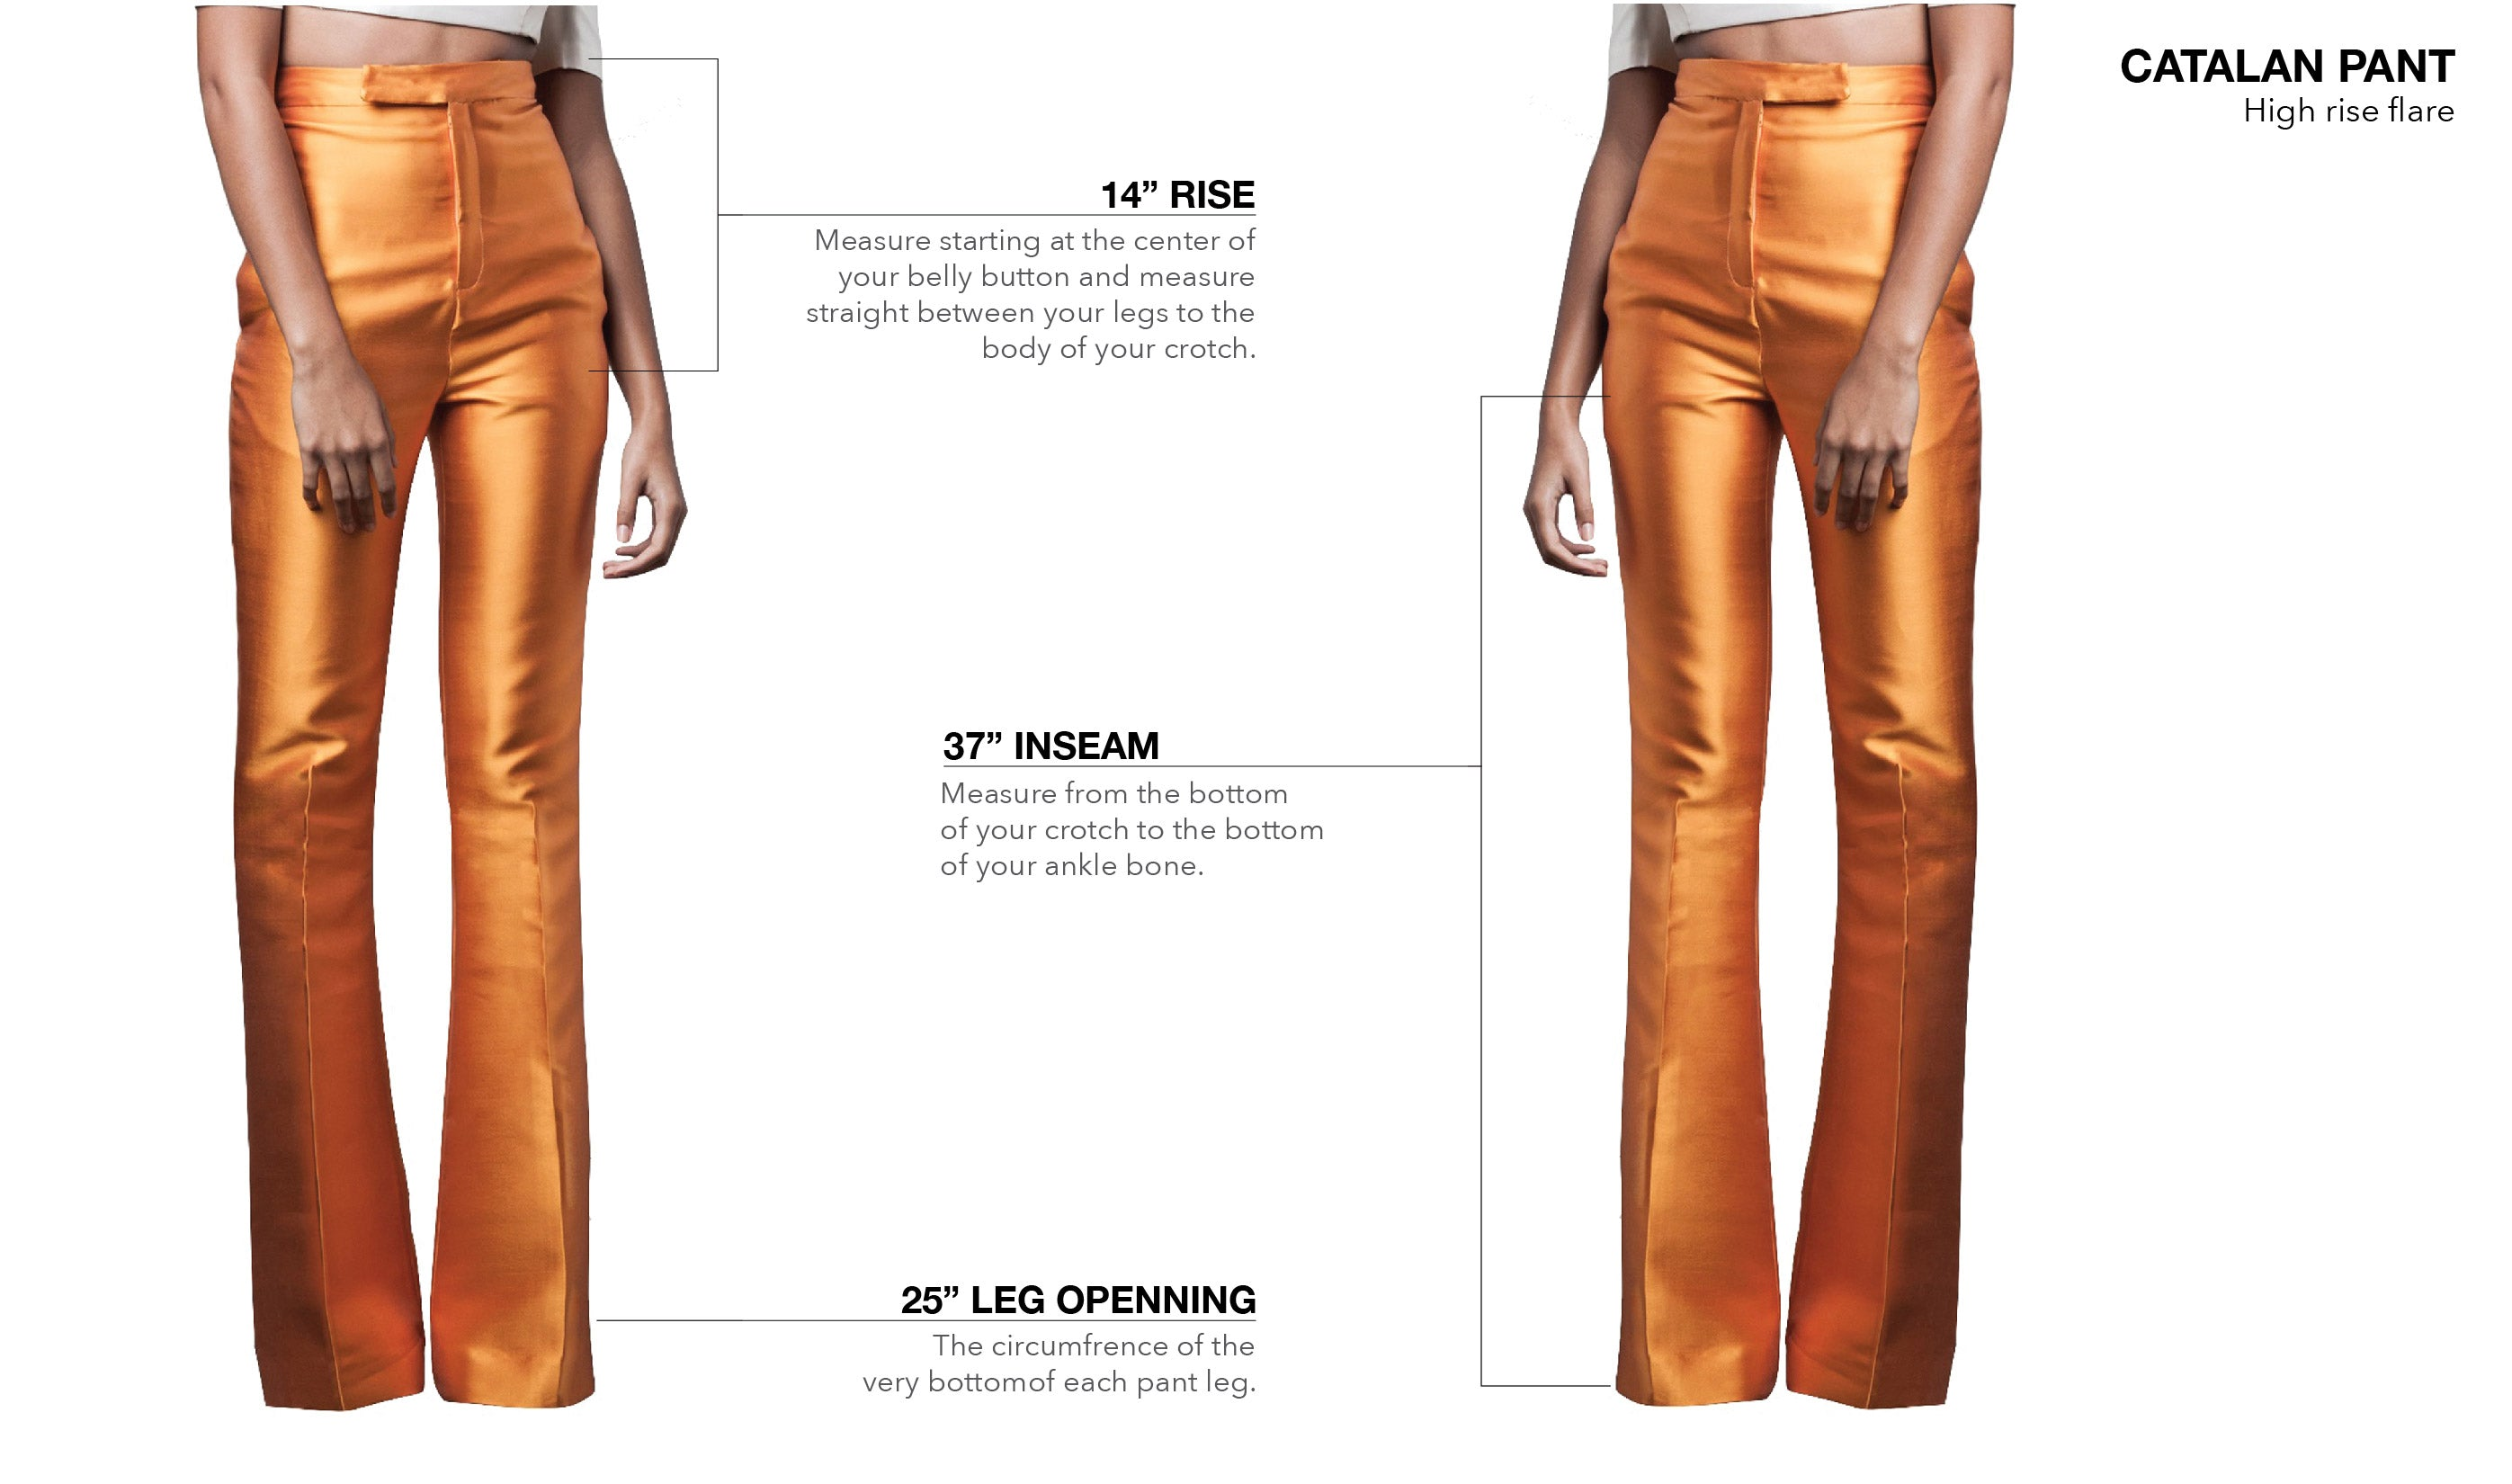 WASHINGTON ROBERTS CATALAN PANT - FIT GUIDE